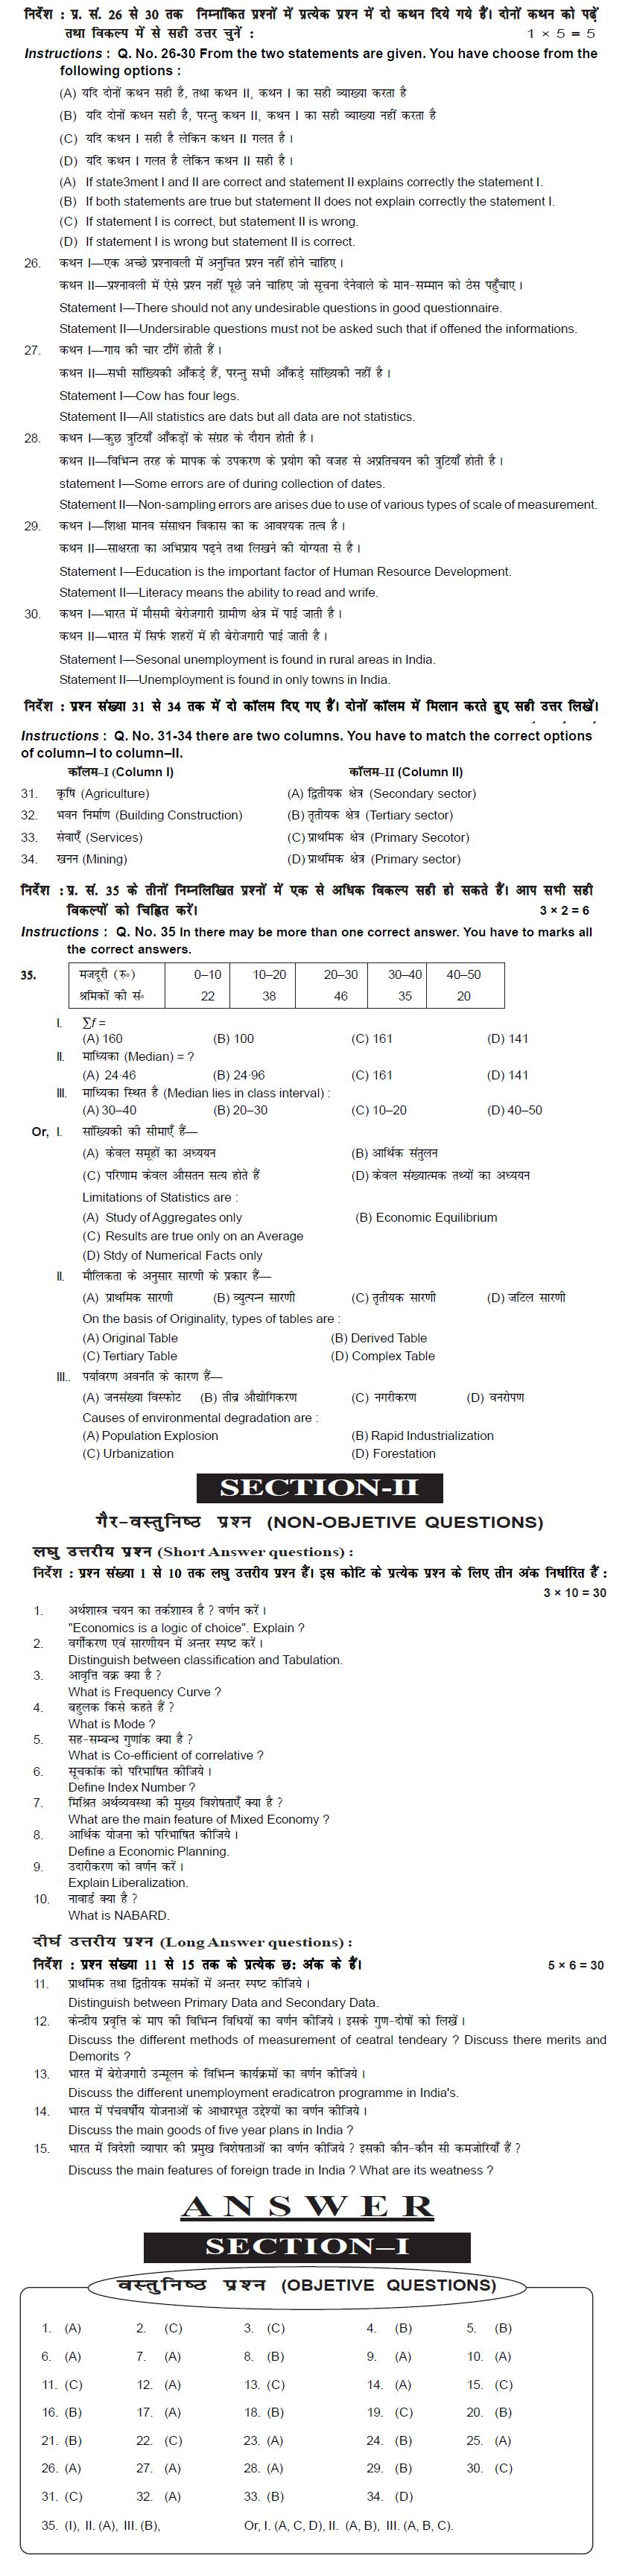 Bihar Board Class XI Commerce Model Question Papers - Economics